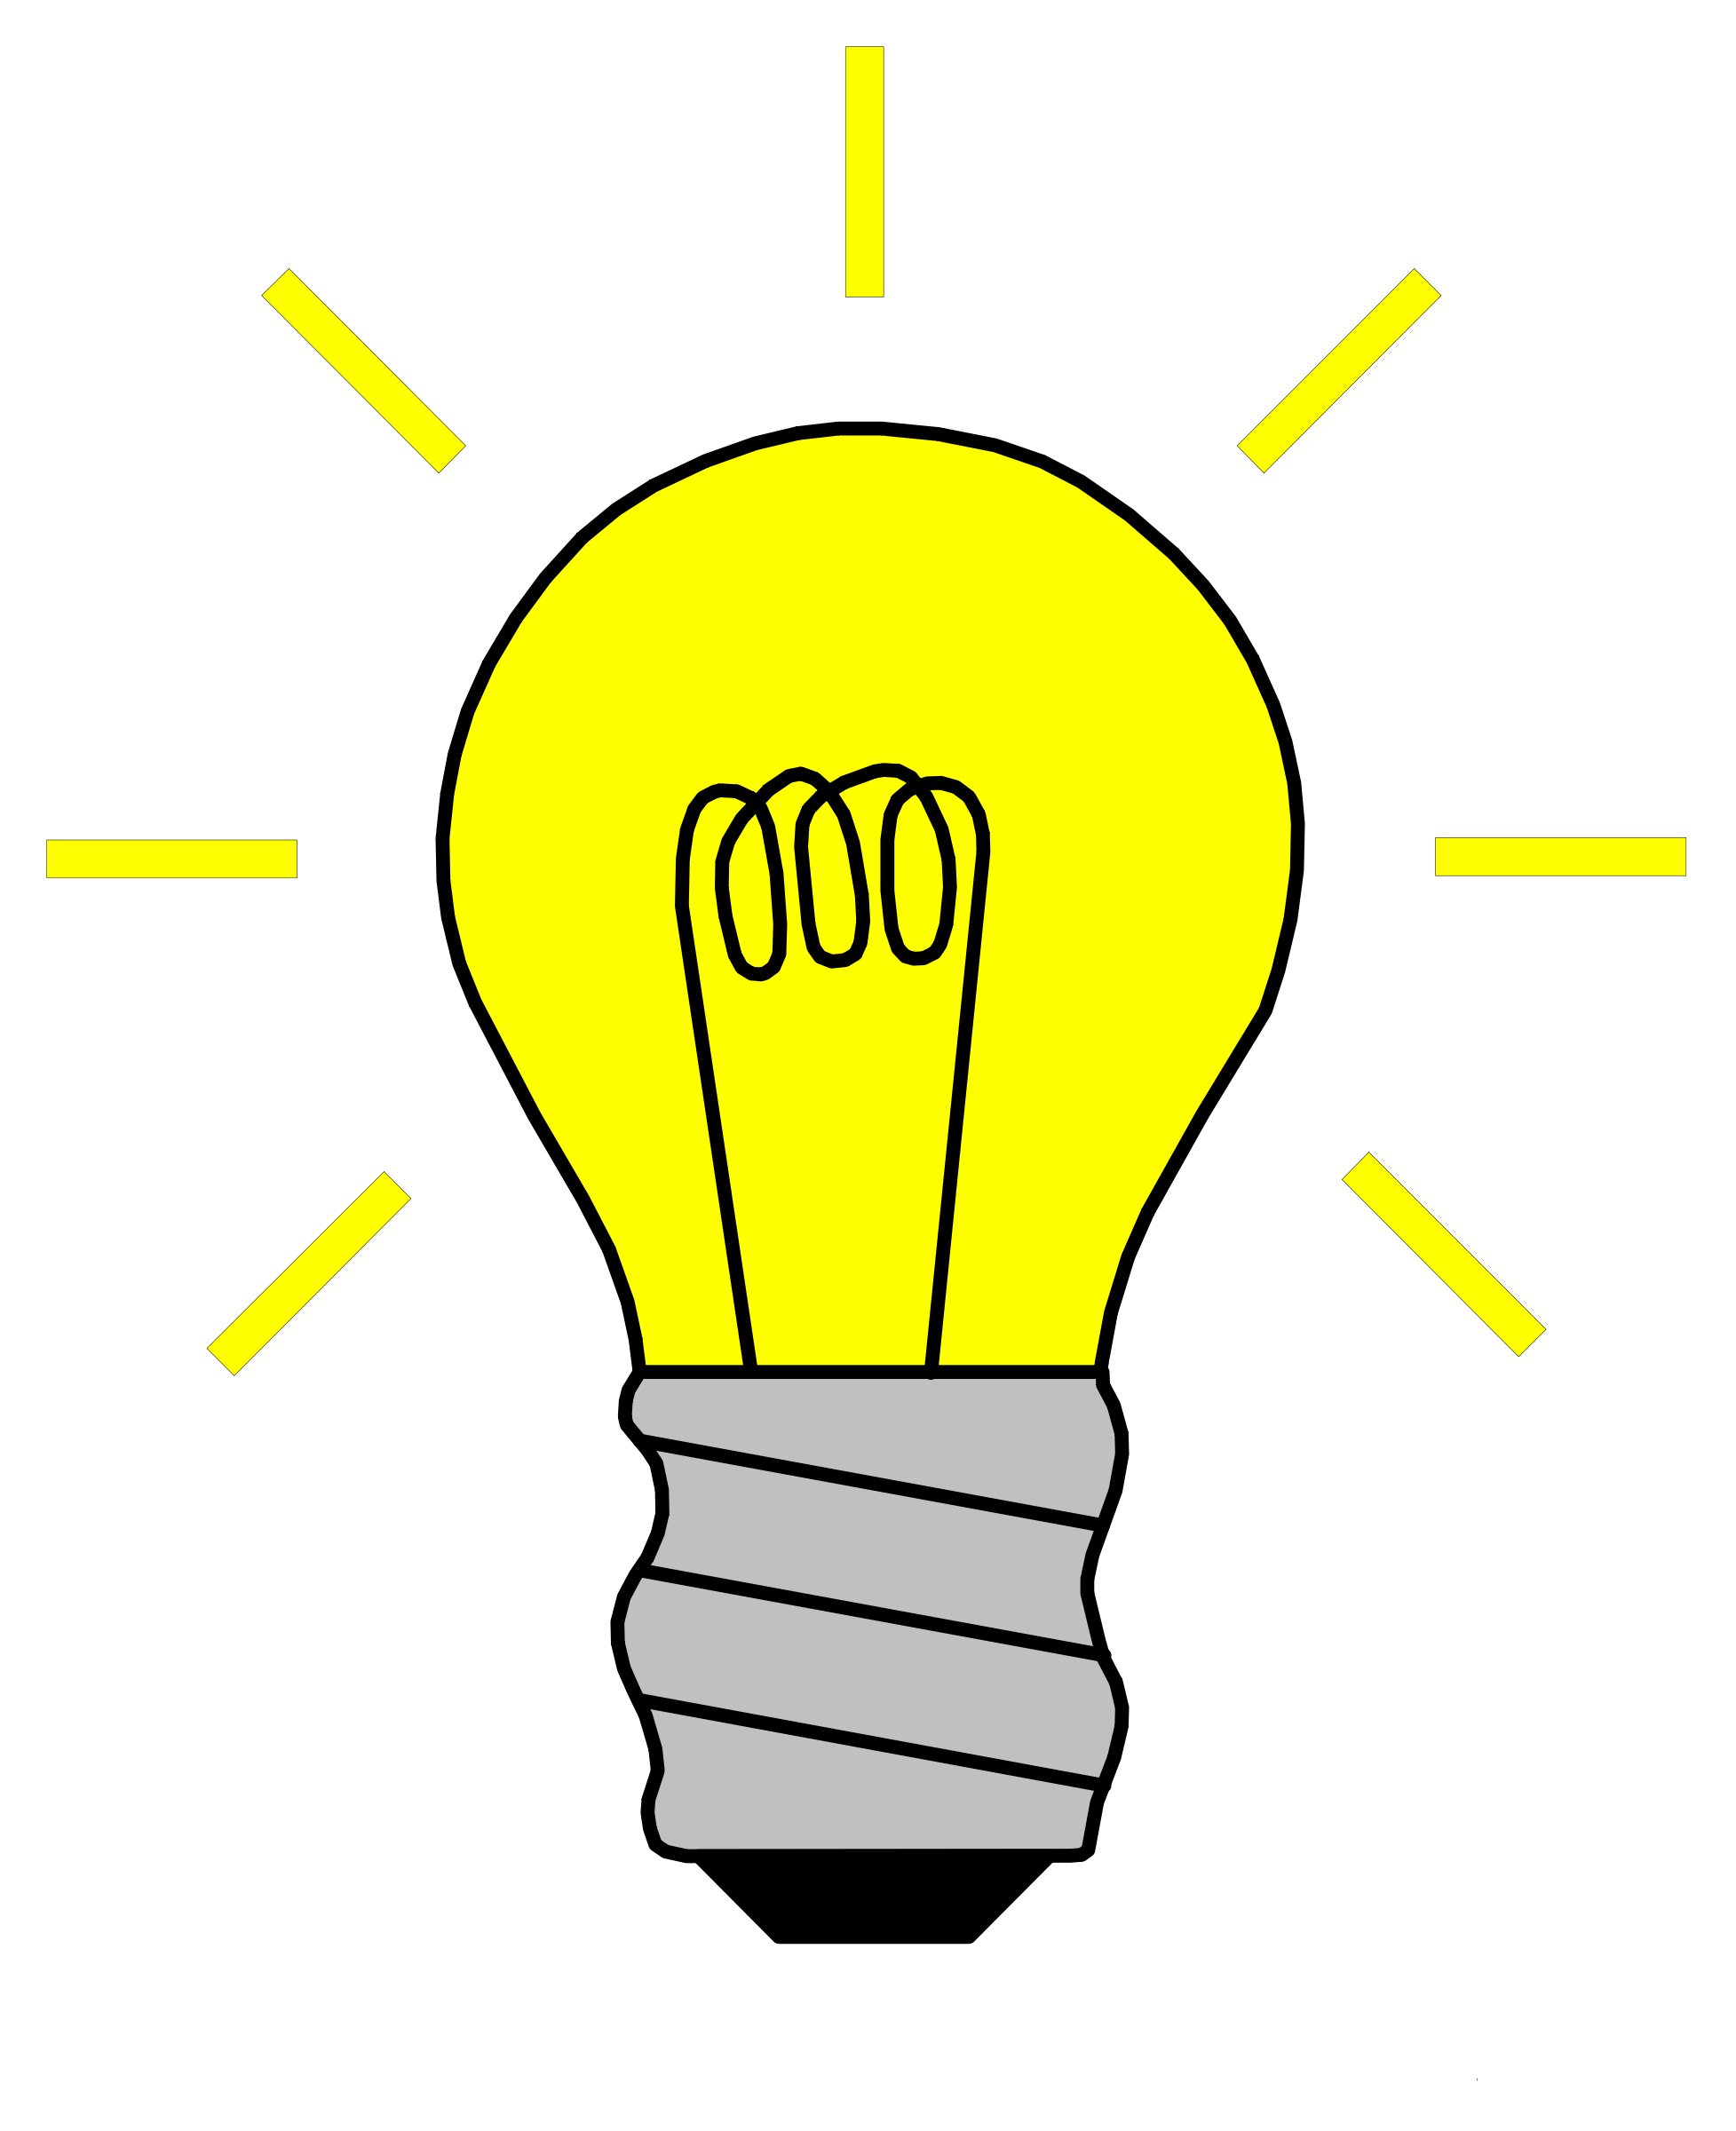 Lights clipart solution. Incontinence panda free images